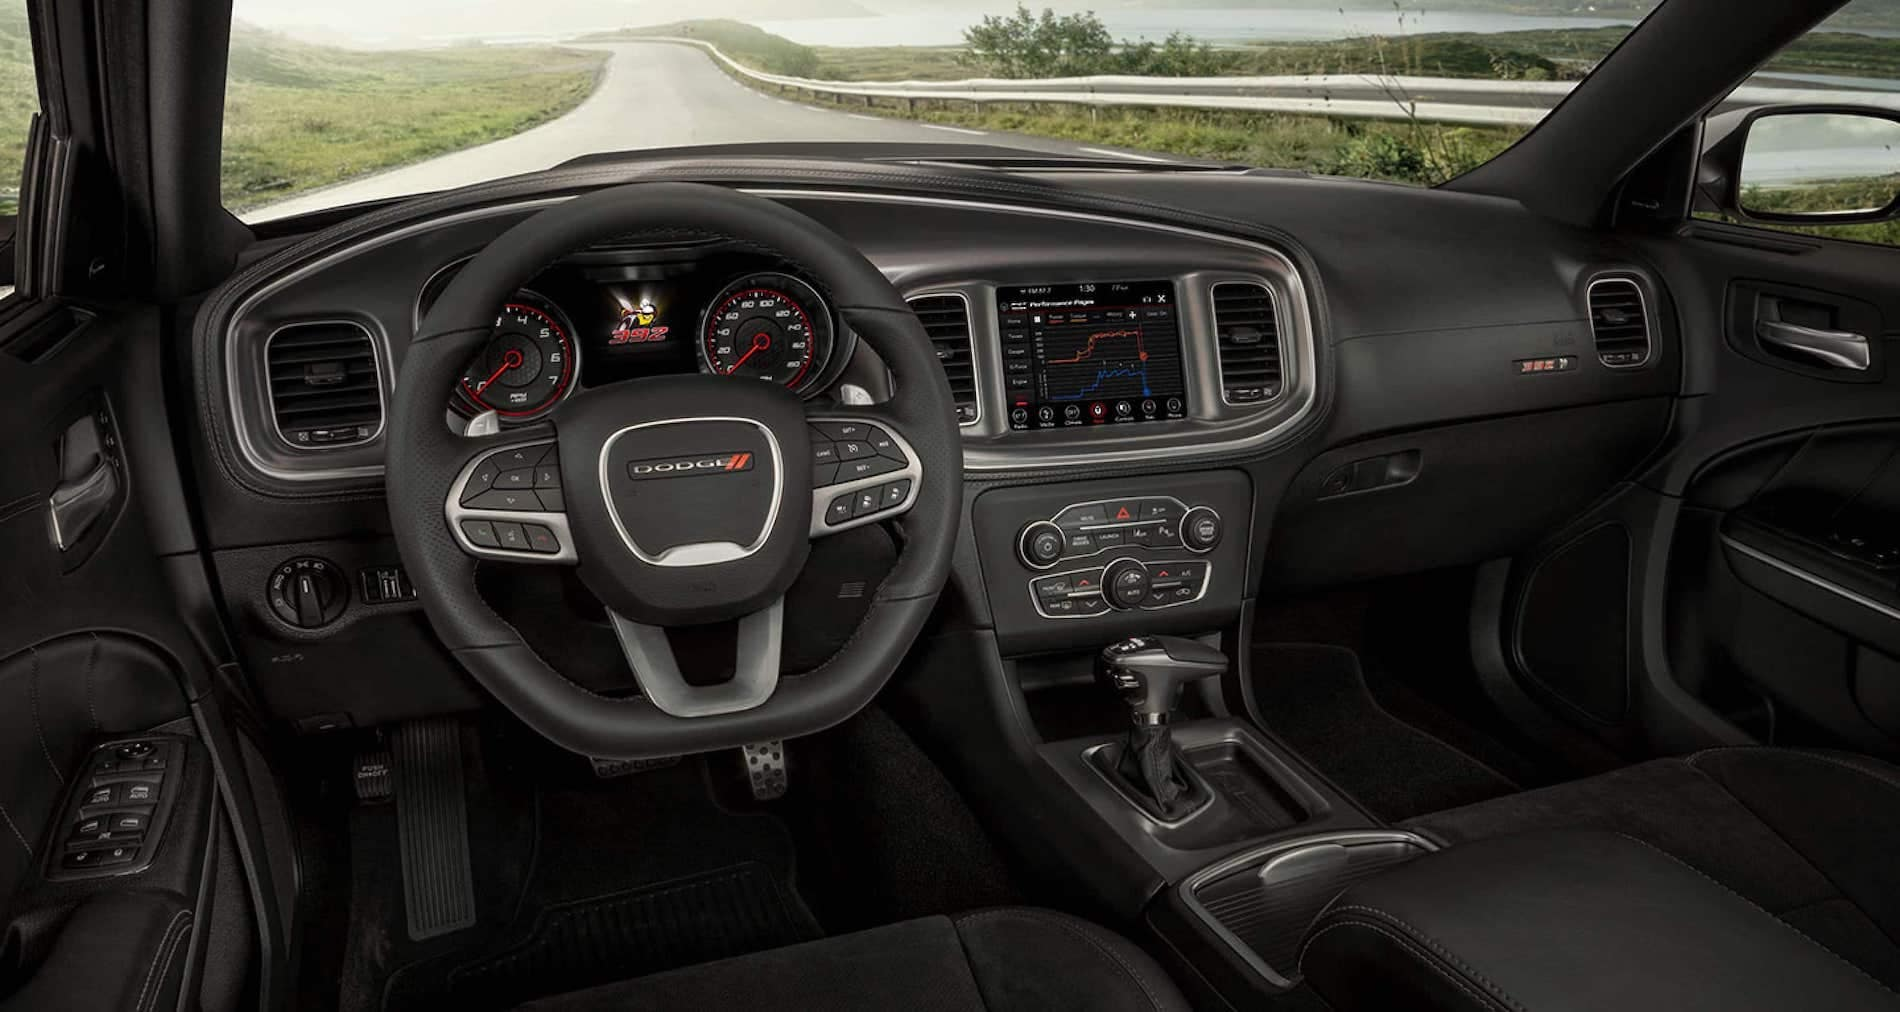 Interior changes to the 2021 Dodge Charger